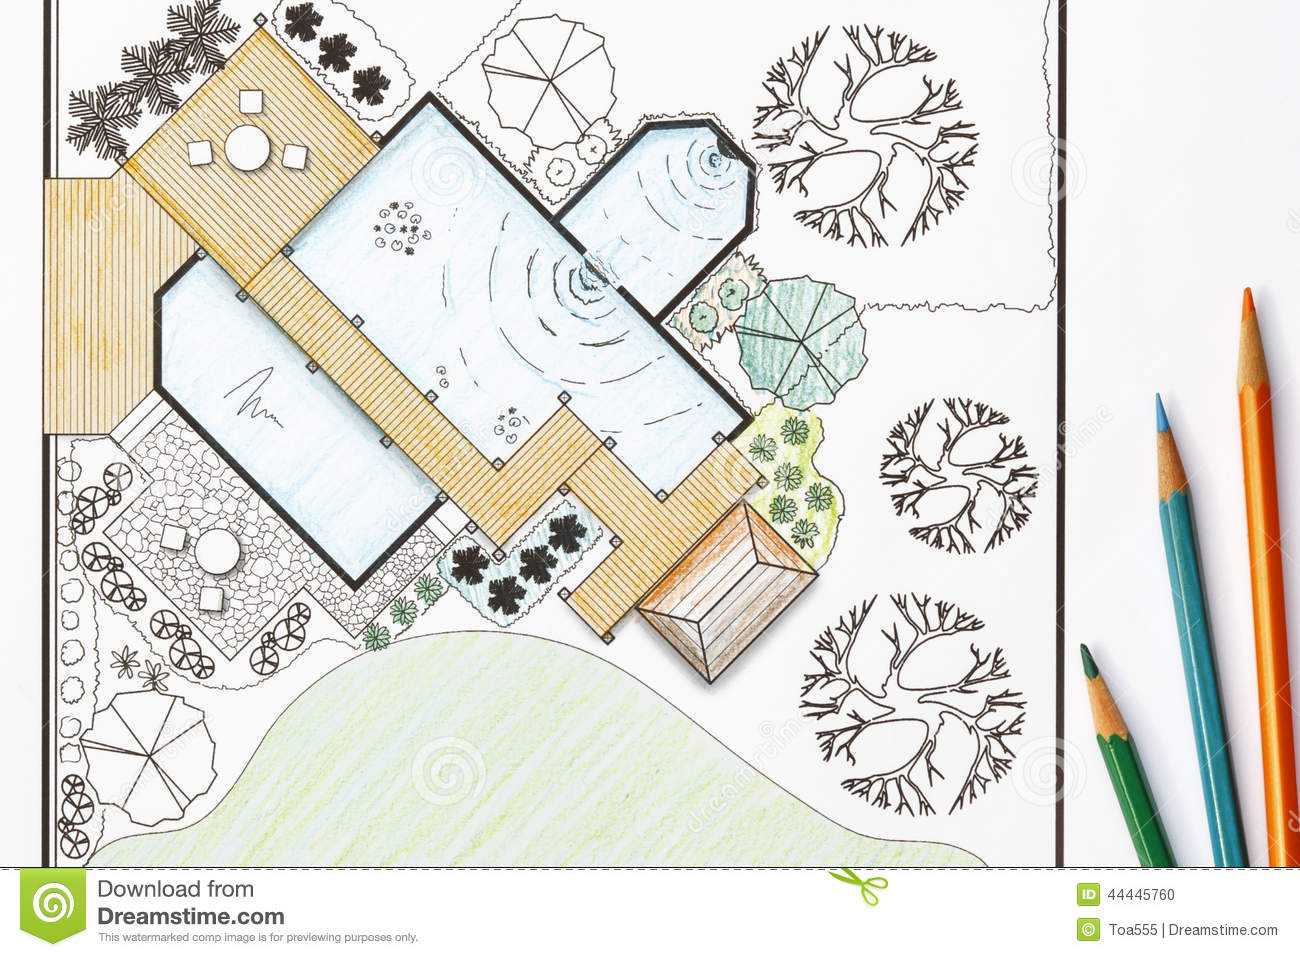 Landscape architect design garden plans for backyard stock for Landscape blueprints